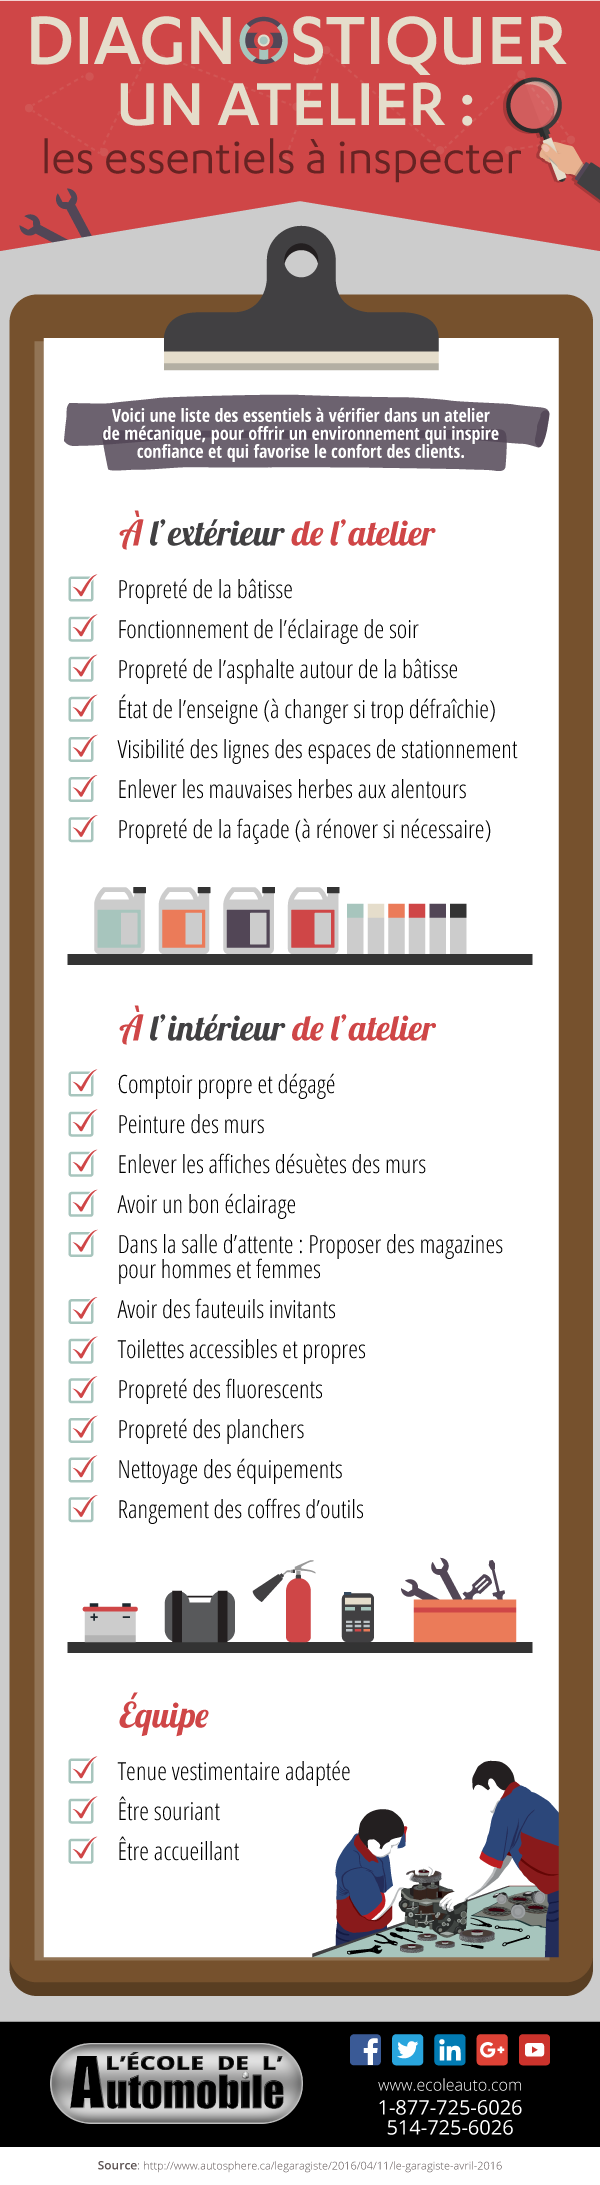 atc_fr_diagnostiquer_son_atelier_infographic-1